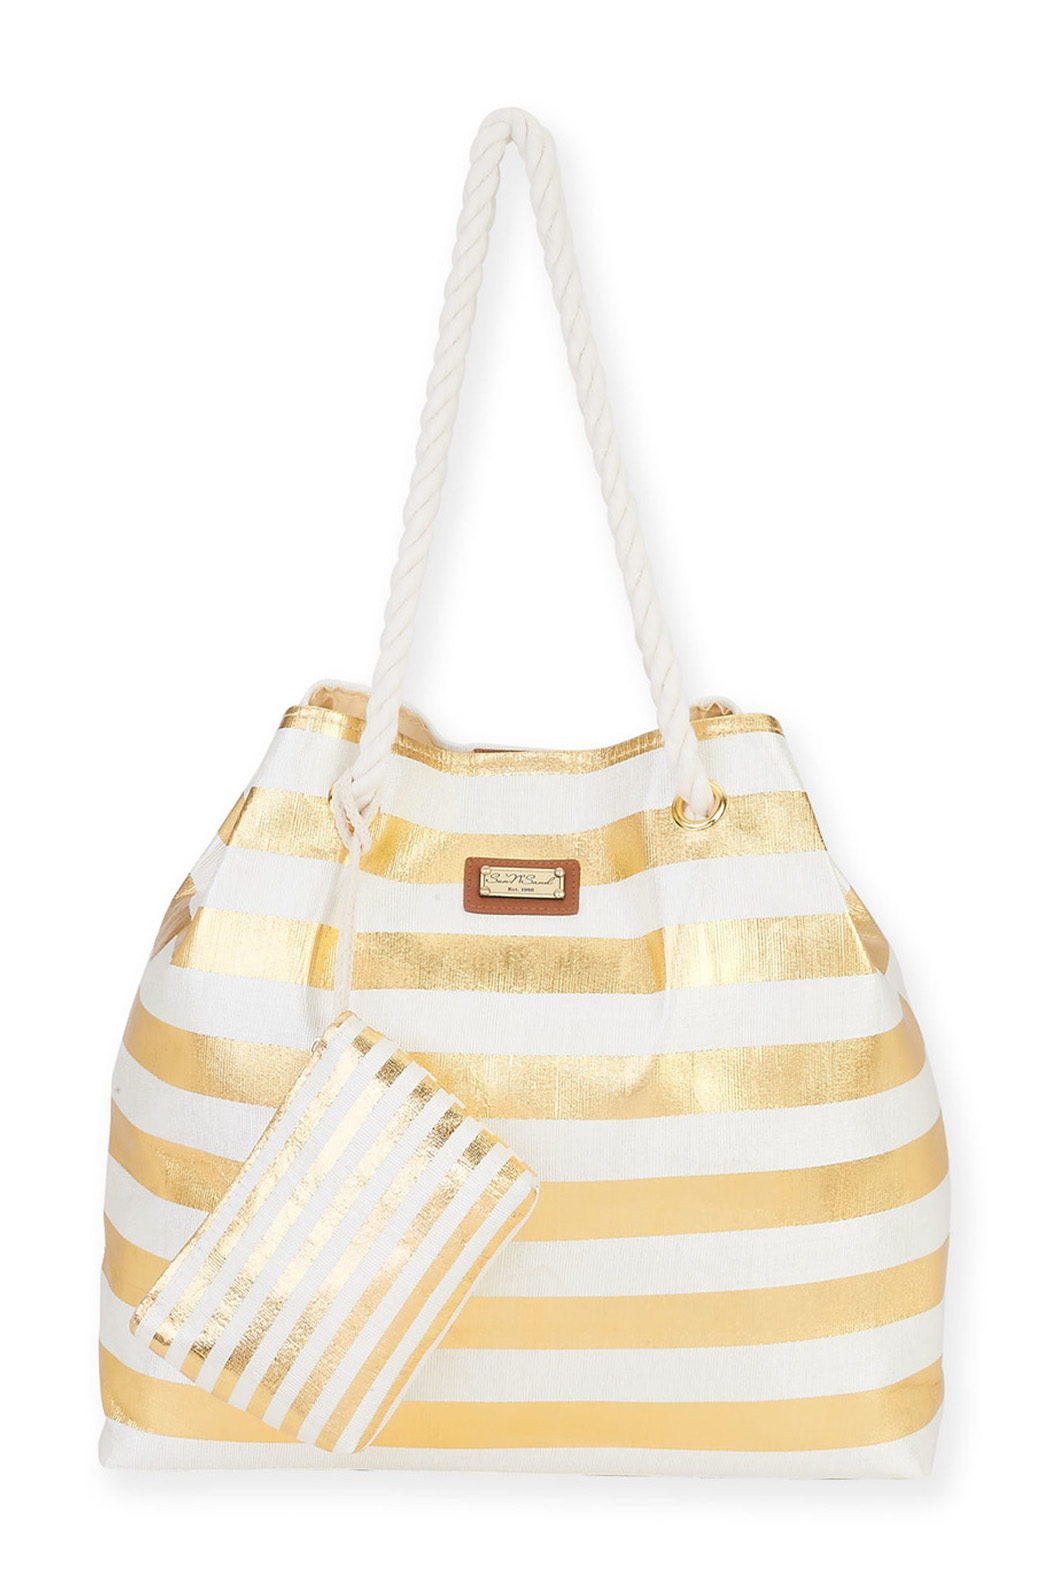 sun and sand Delma Gap Tote - Front Cropped Image